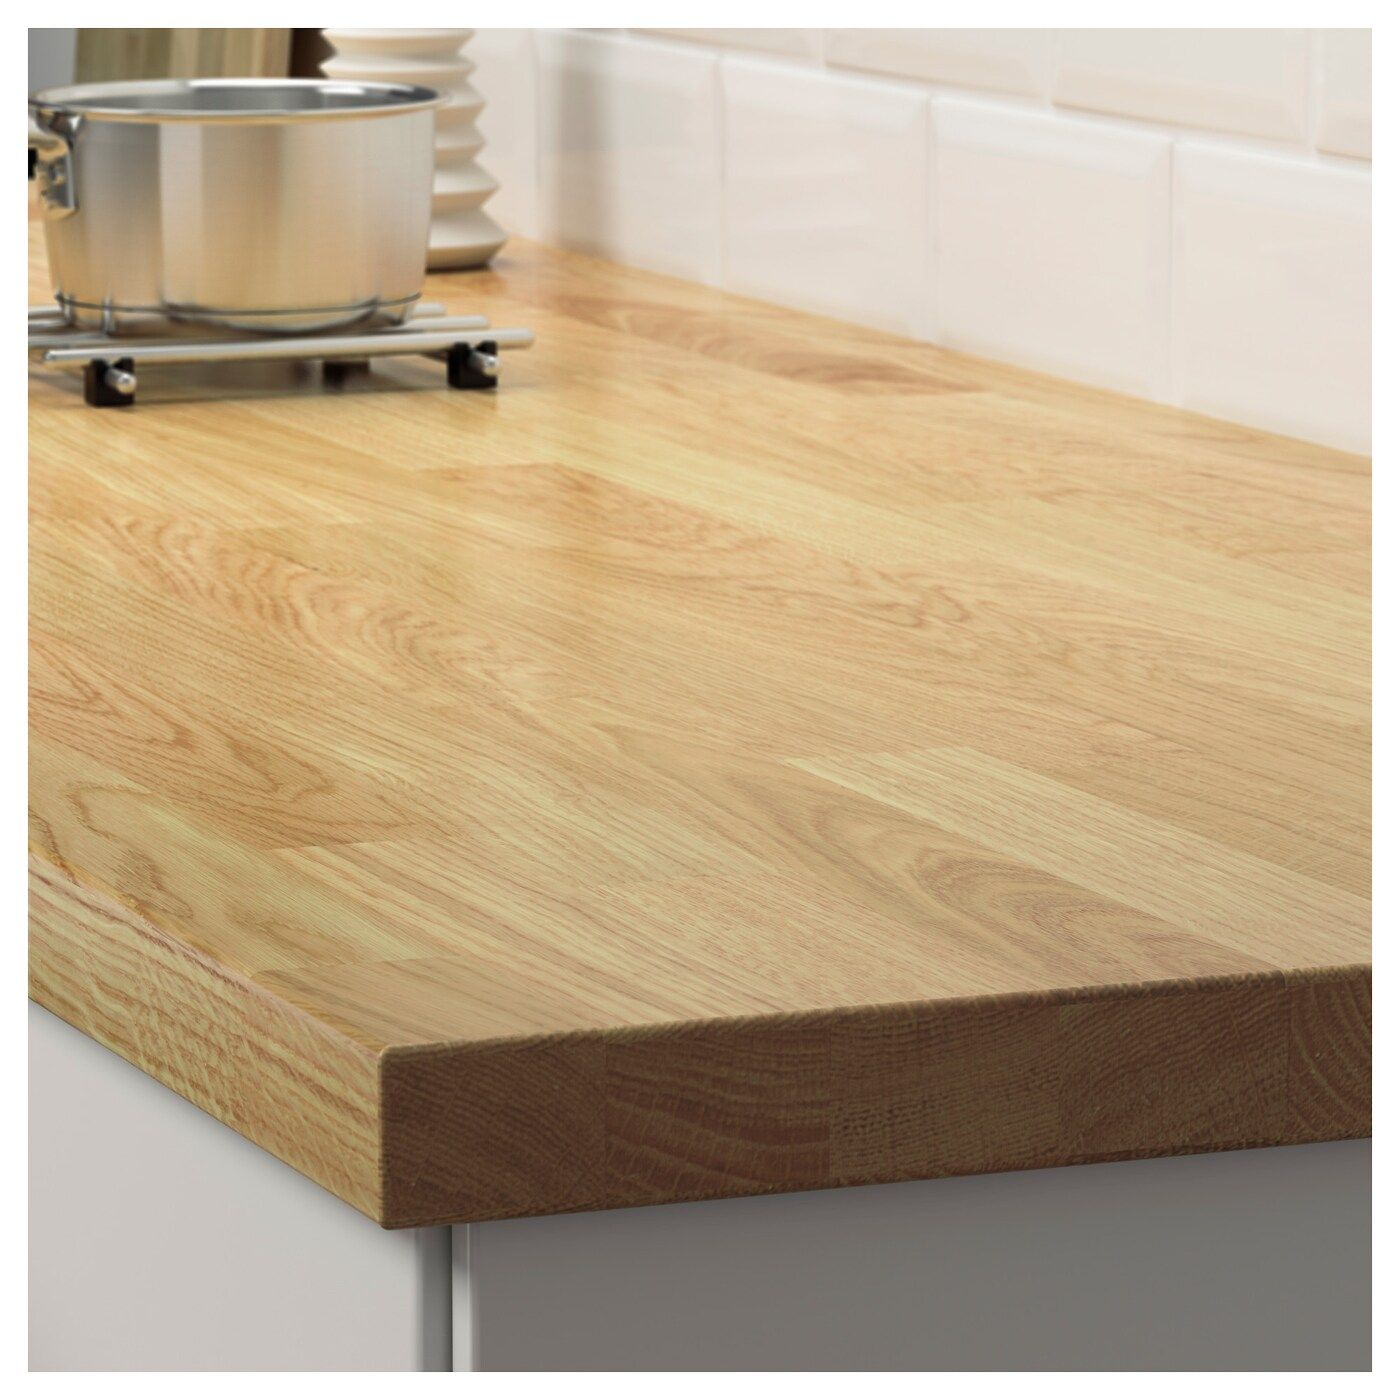 Karlby Countertop For Kitchen Island Oak Veneer 74x42x1 1 2